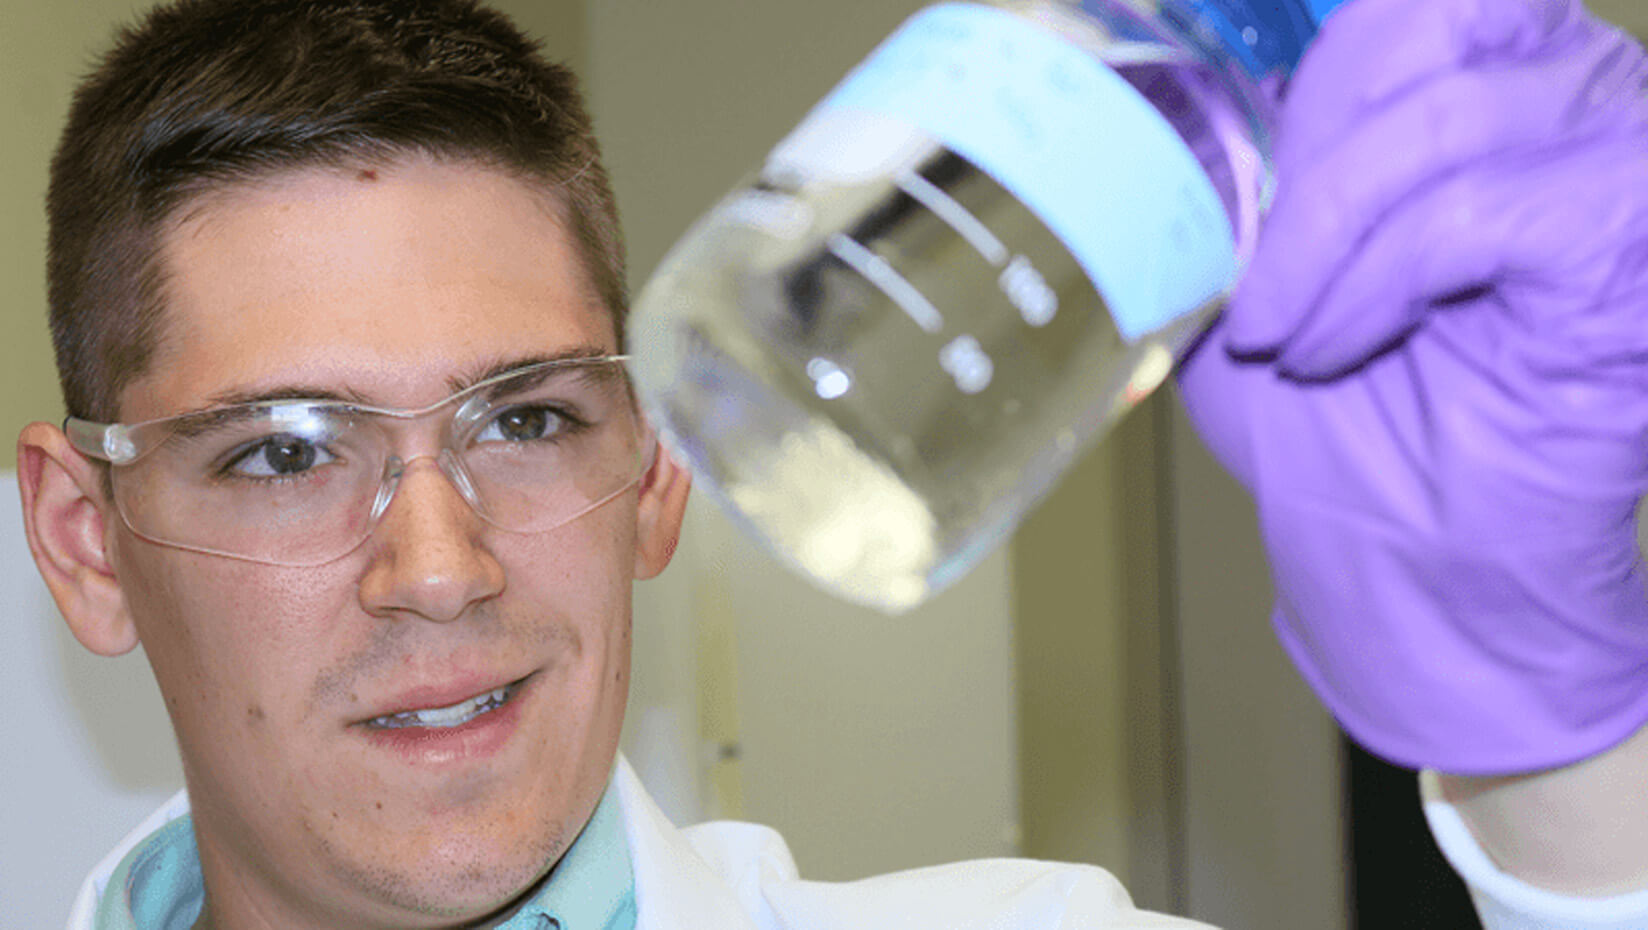 featured image for Austin Steward: Bioengineering major aiming for pediatric career in Maine